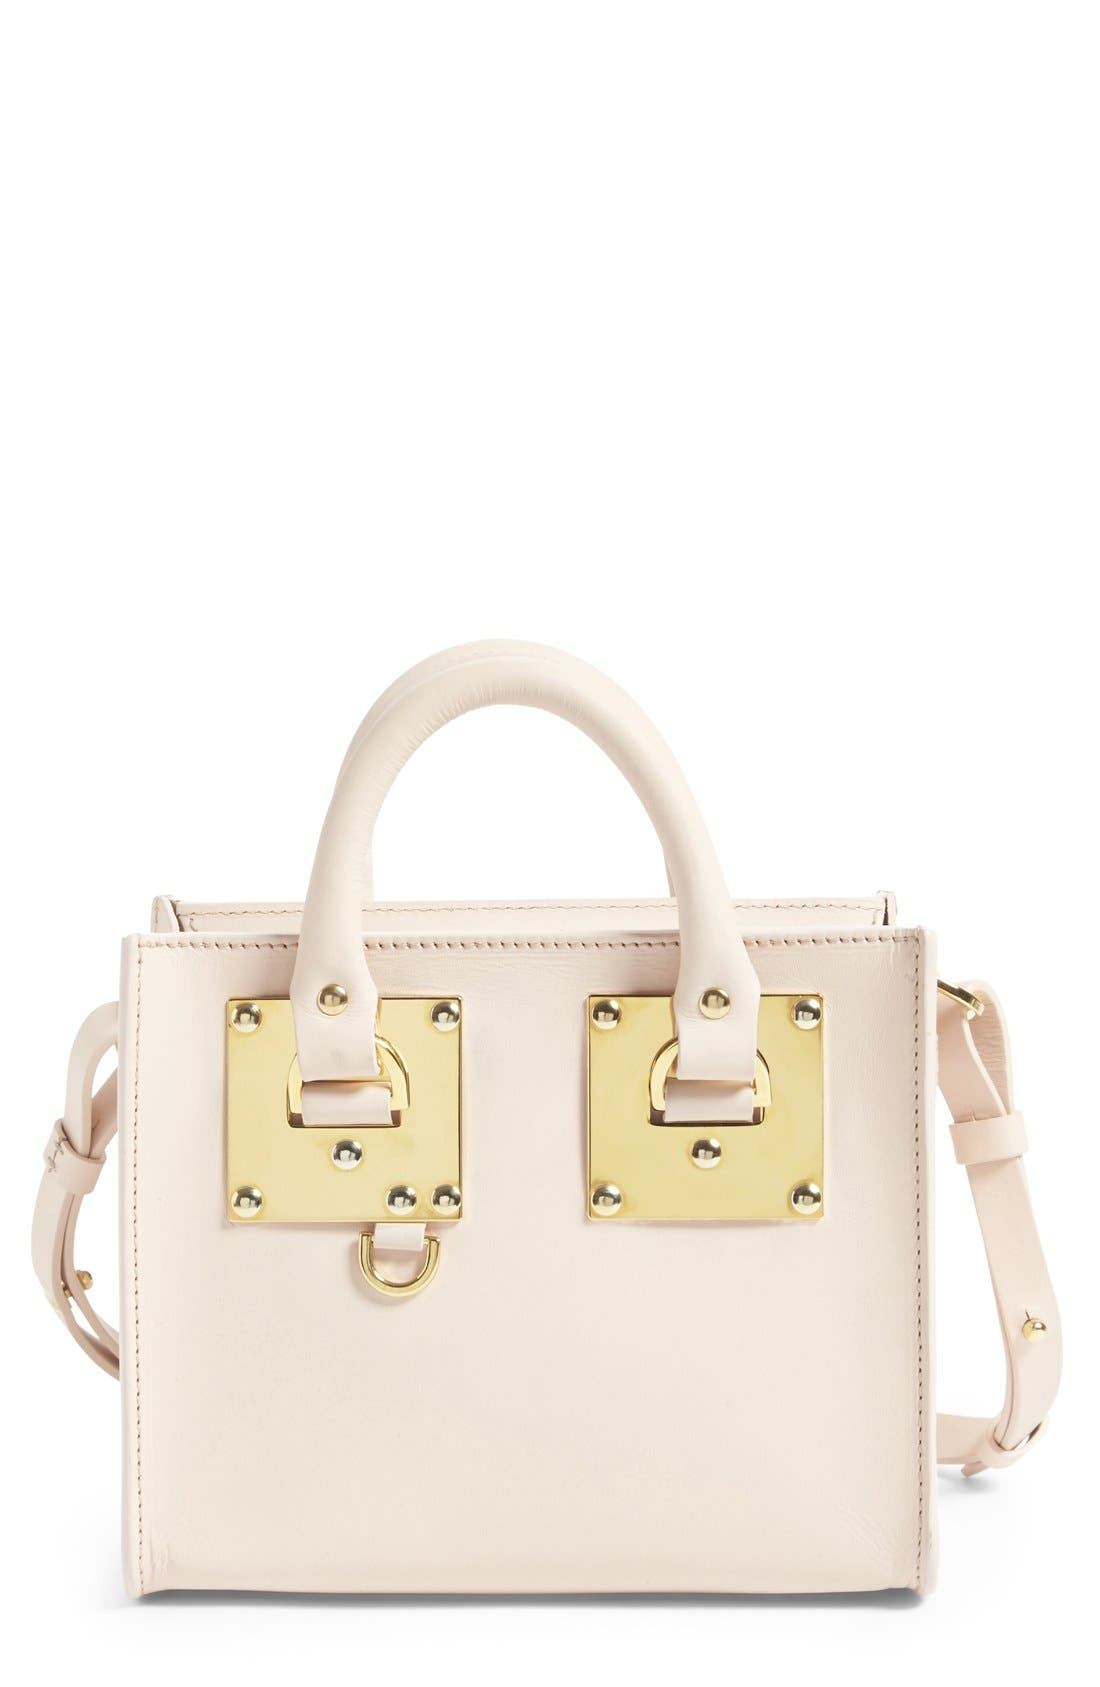 Alternate Image 1 Selected - Sophie Hulme 'Albion' Box Tote